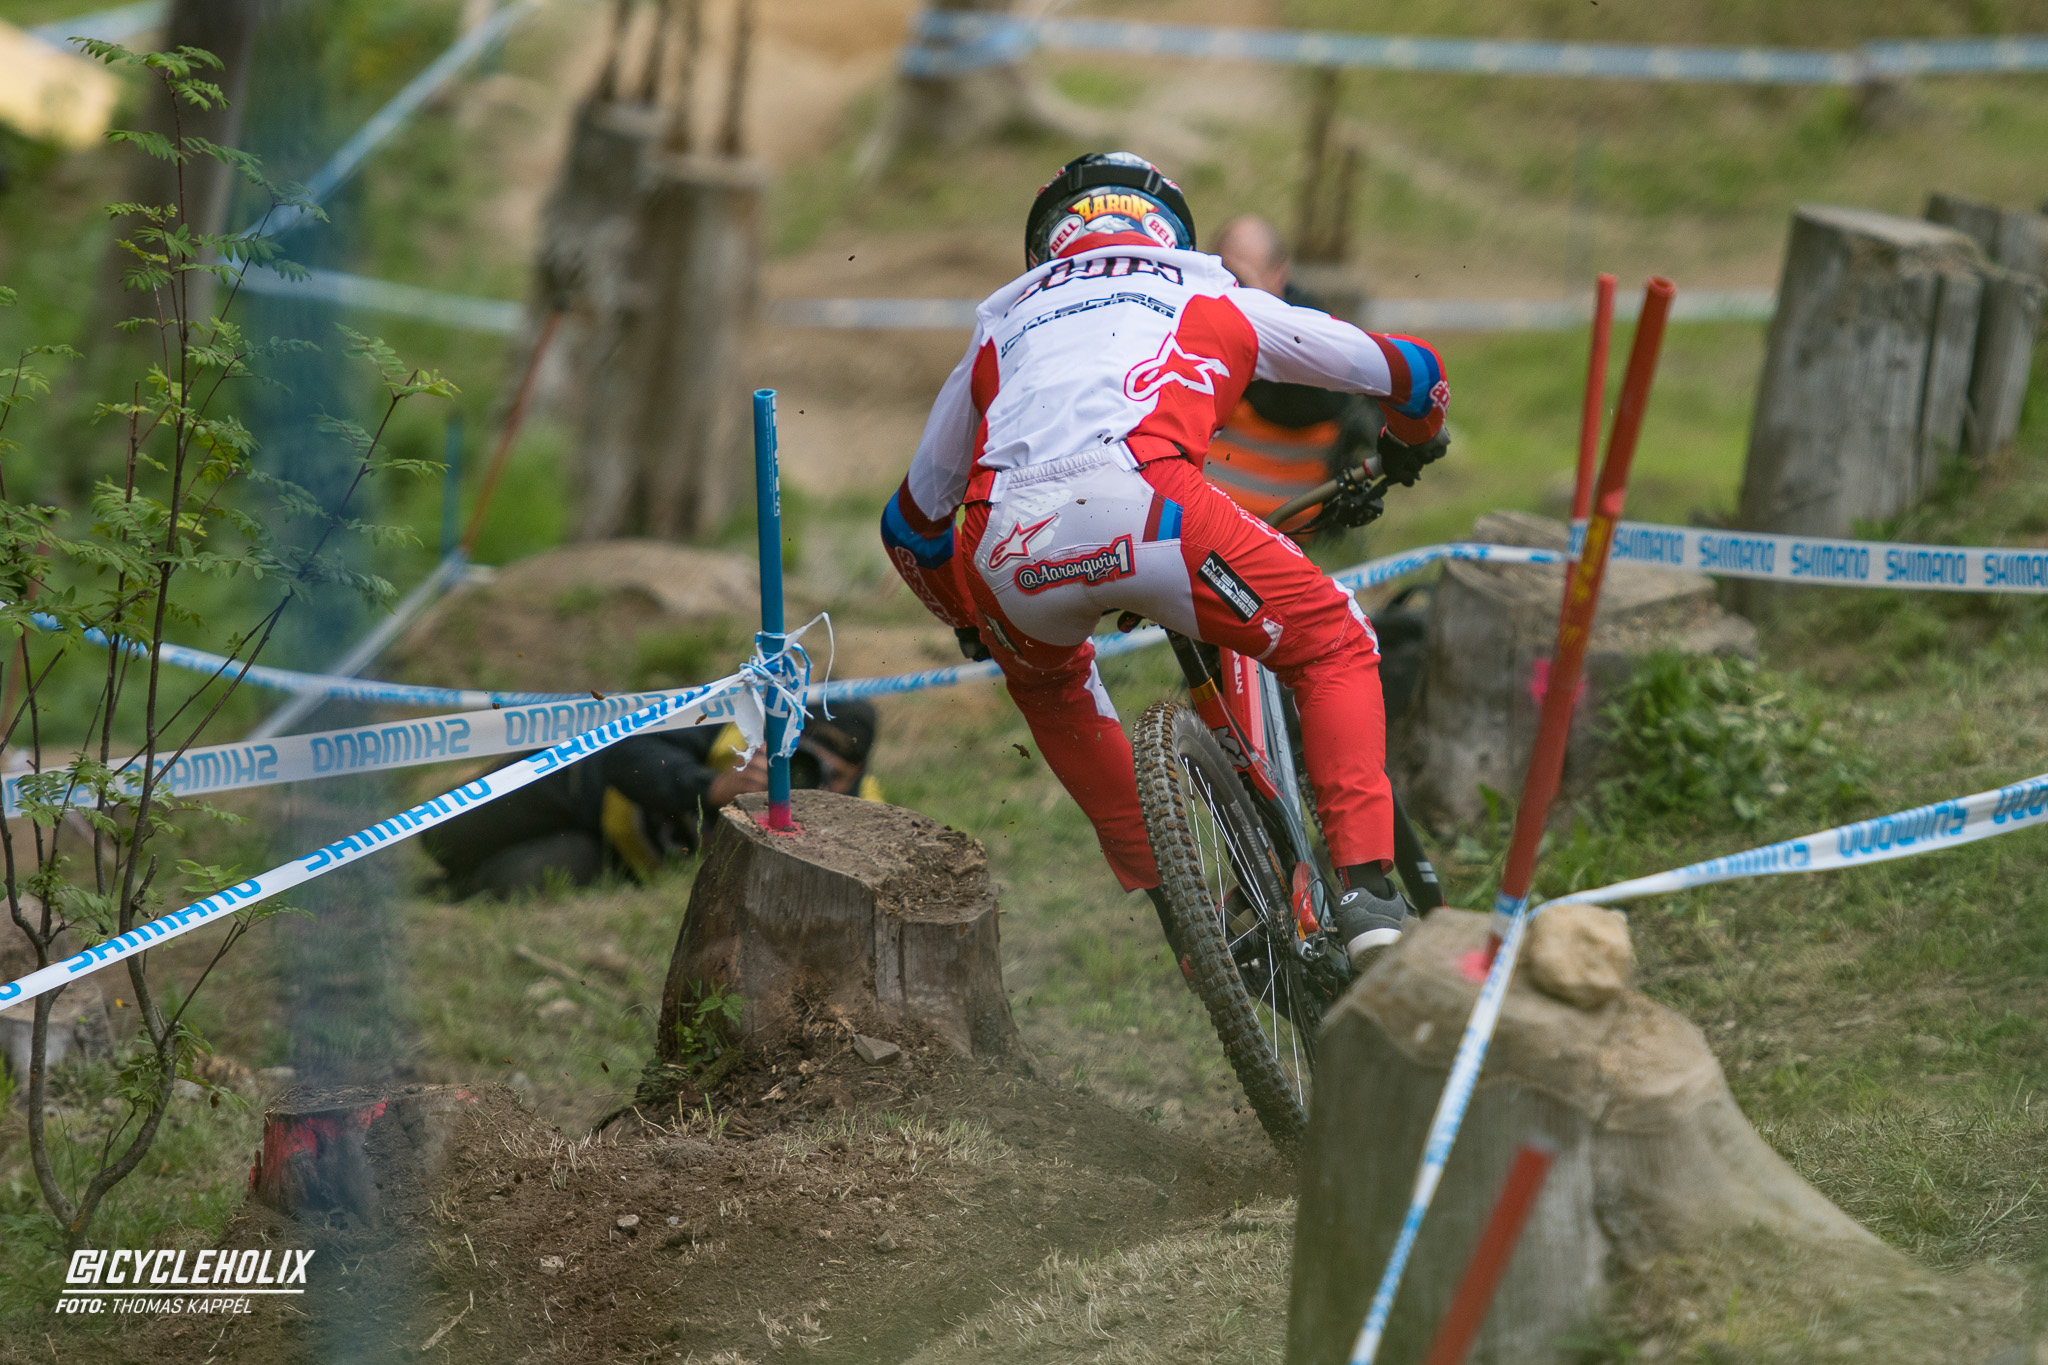 2019 Downhill Worldcup Leogang Finale Action QA 7